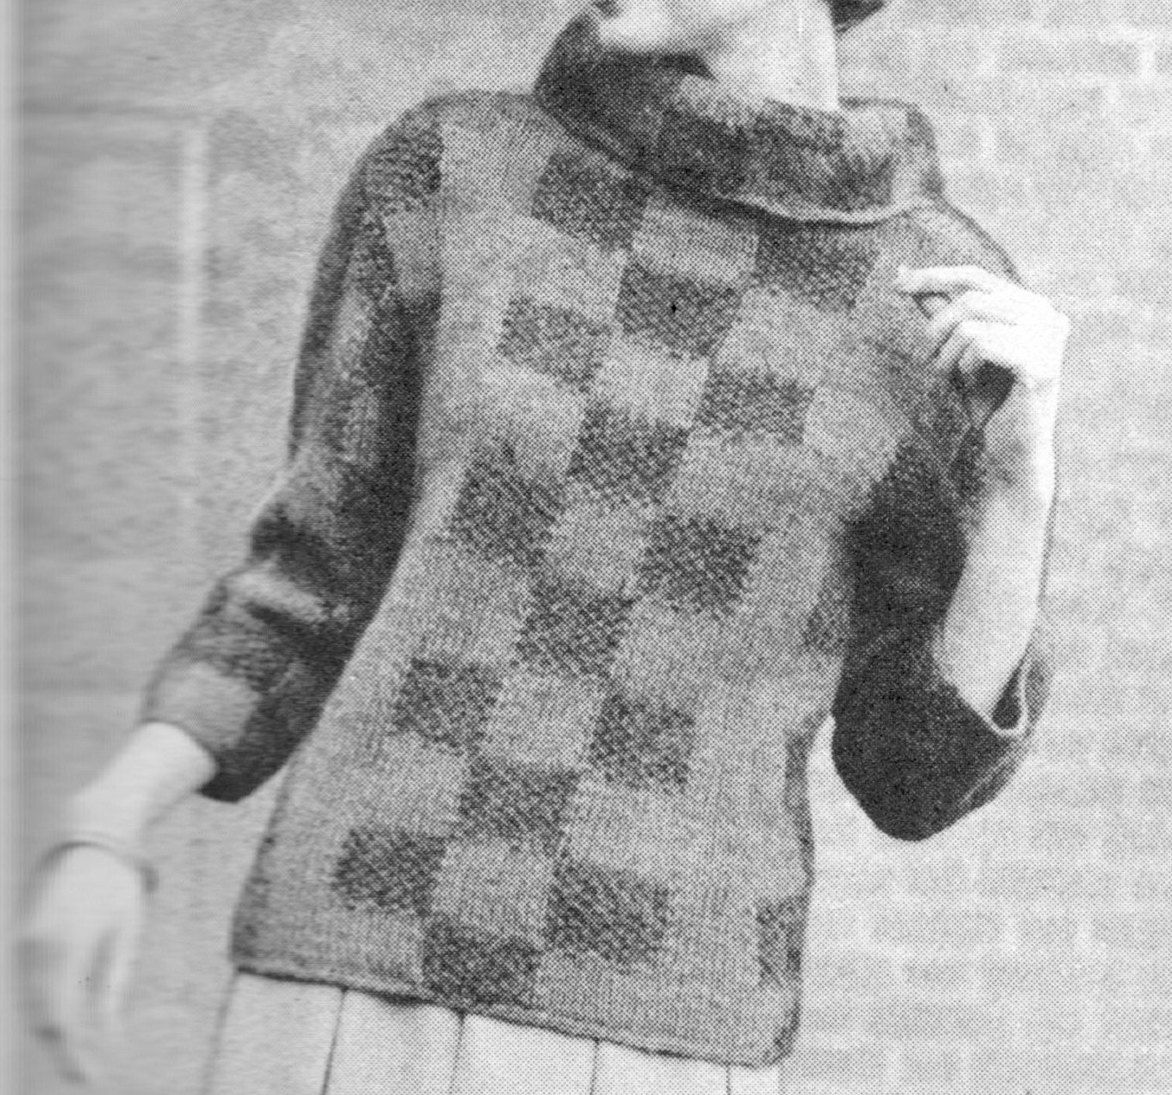 147 pdf pullover sweater knitting pattern checkered sweater pattern 147 pdf pullover sweater knitting pattern checkered sweater pattern ladies sweater womens size 12 14 16 vintage 1960s pdf download dt1010fo